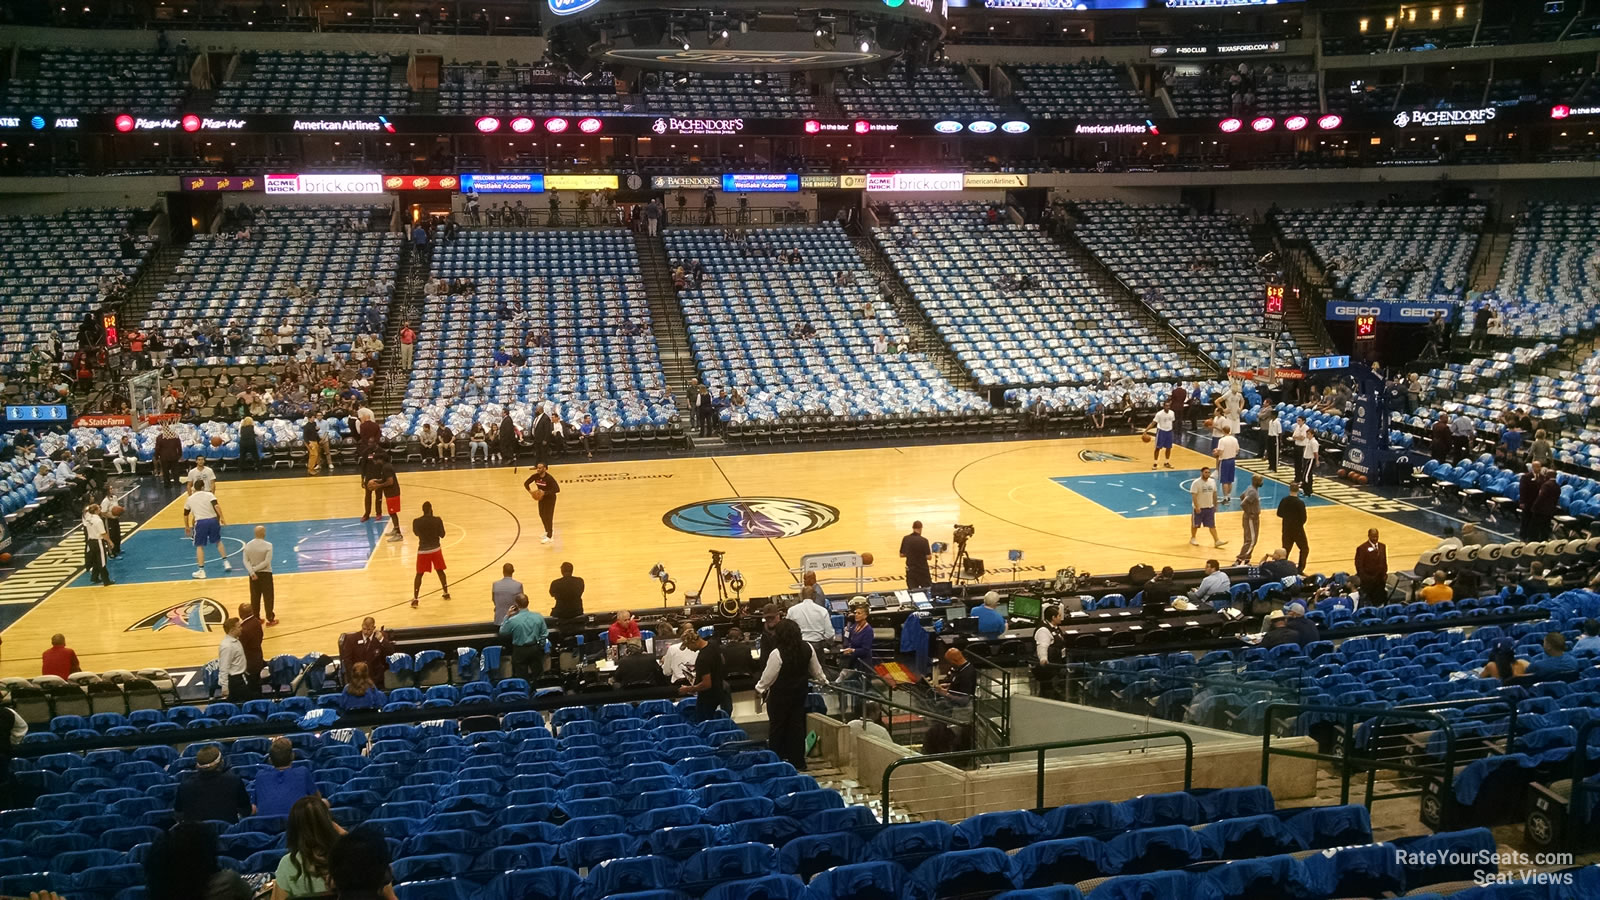 Section 119 seat view